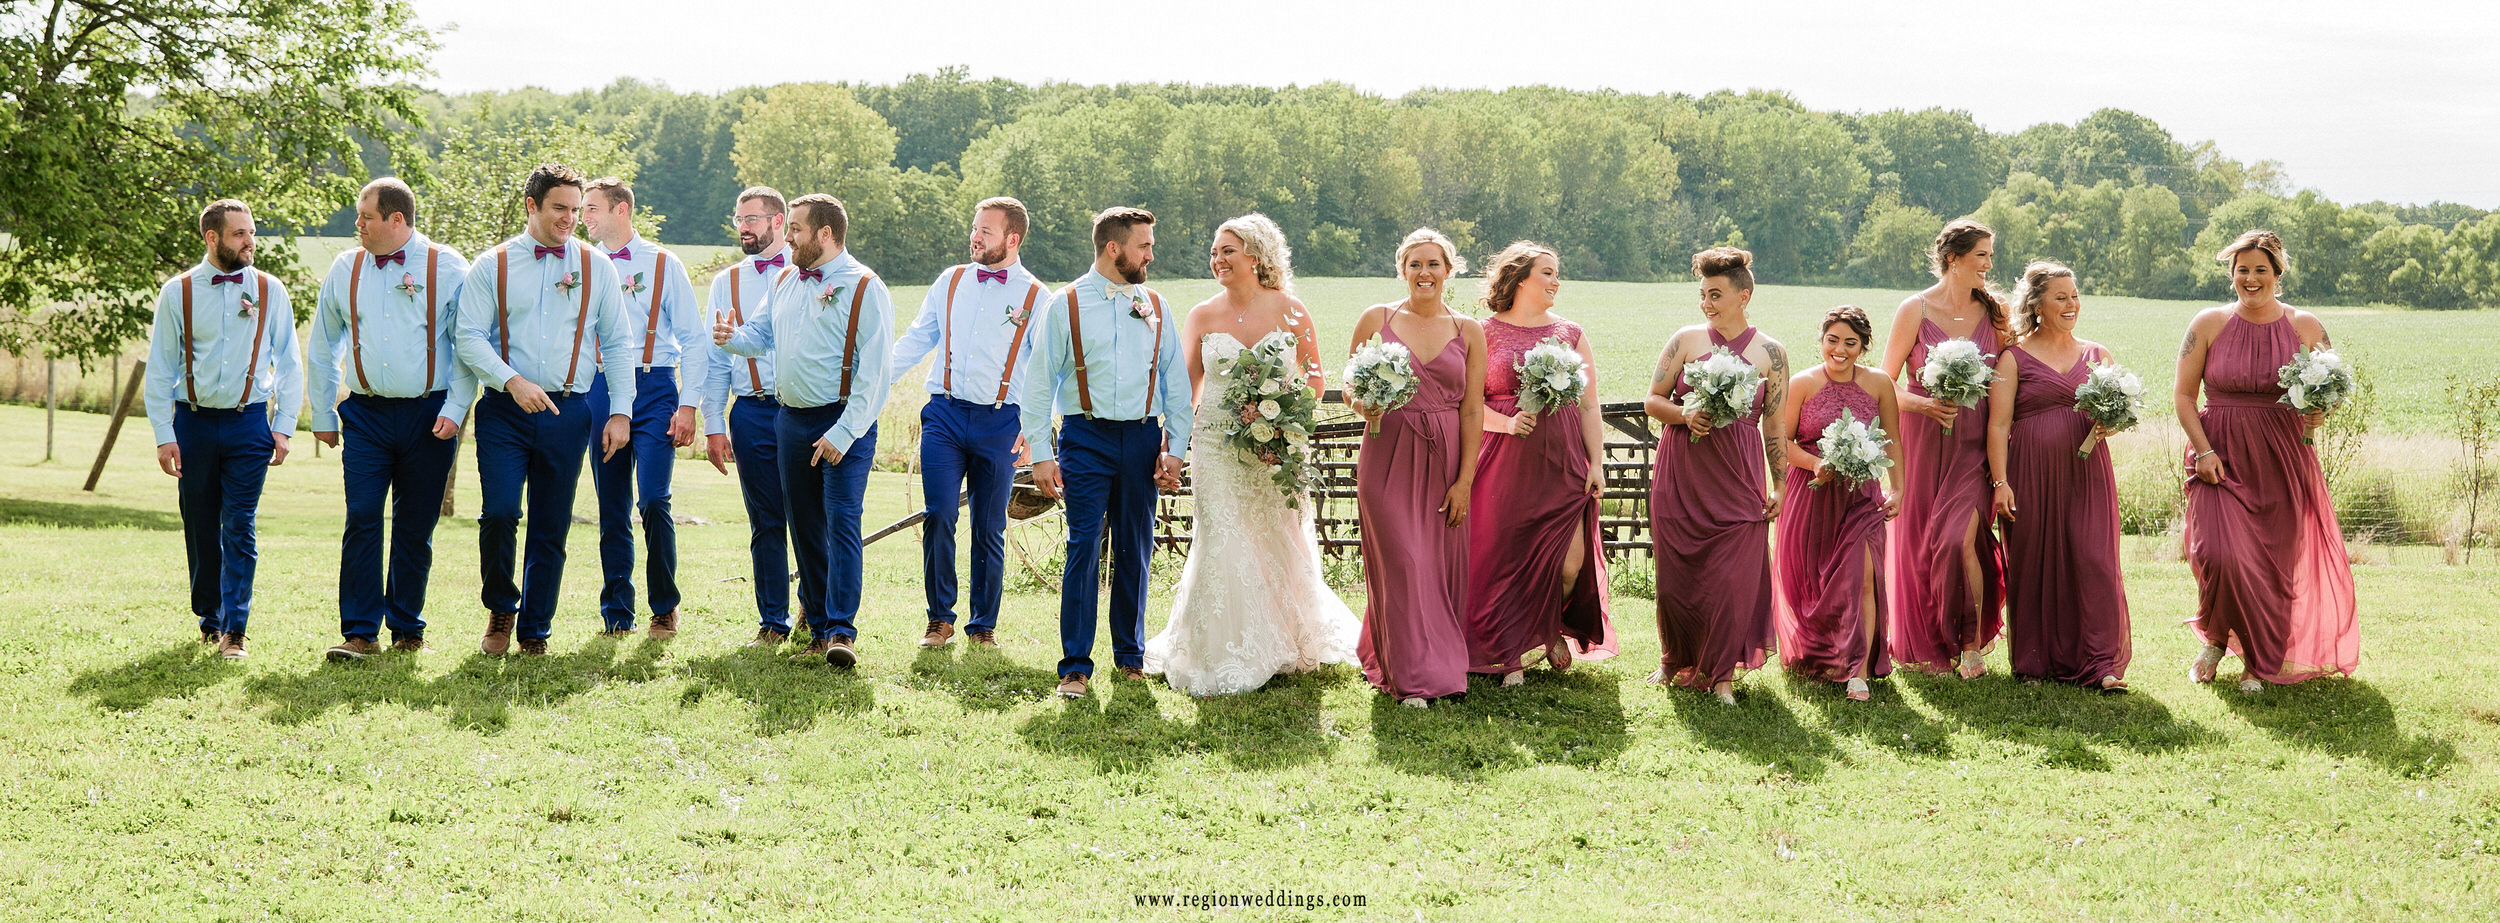 The wedding party takes a walk through the fields at Four Corners Winery.